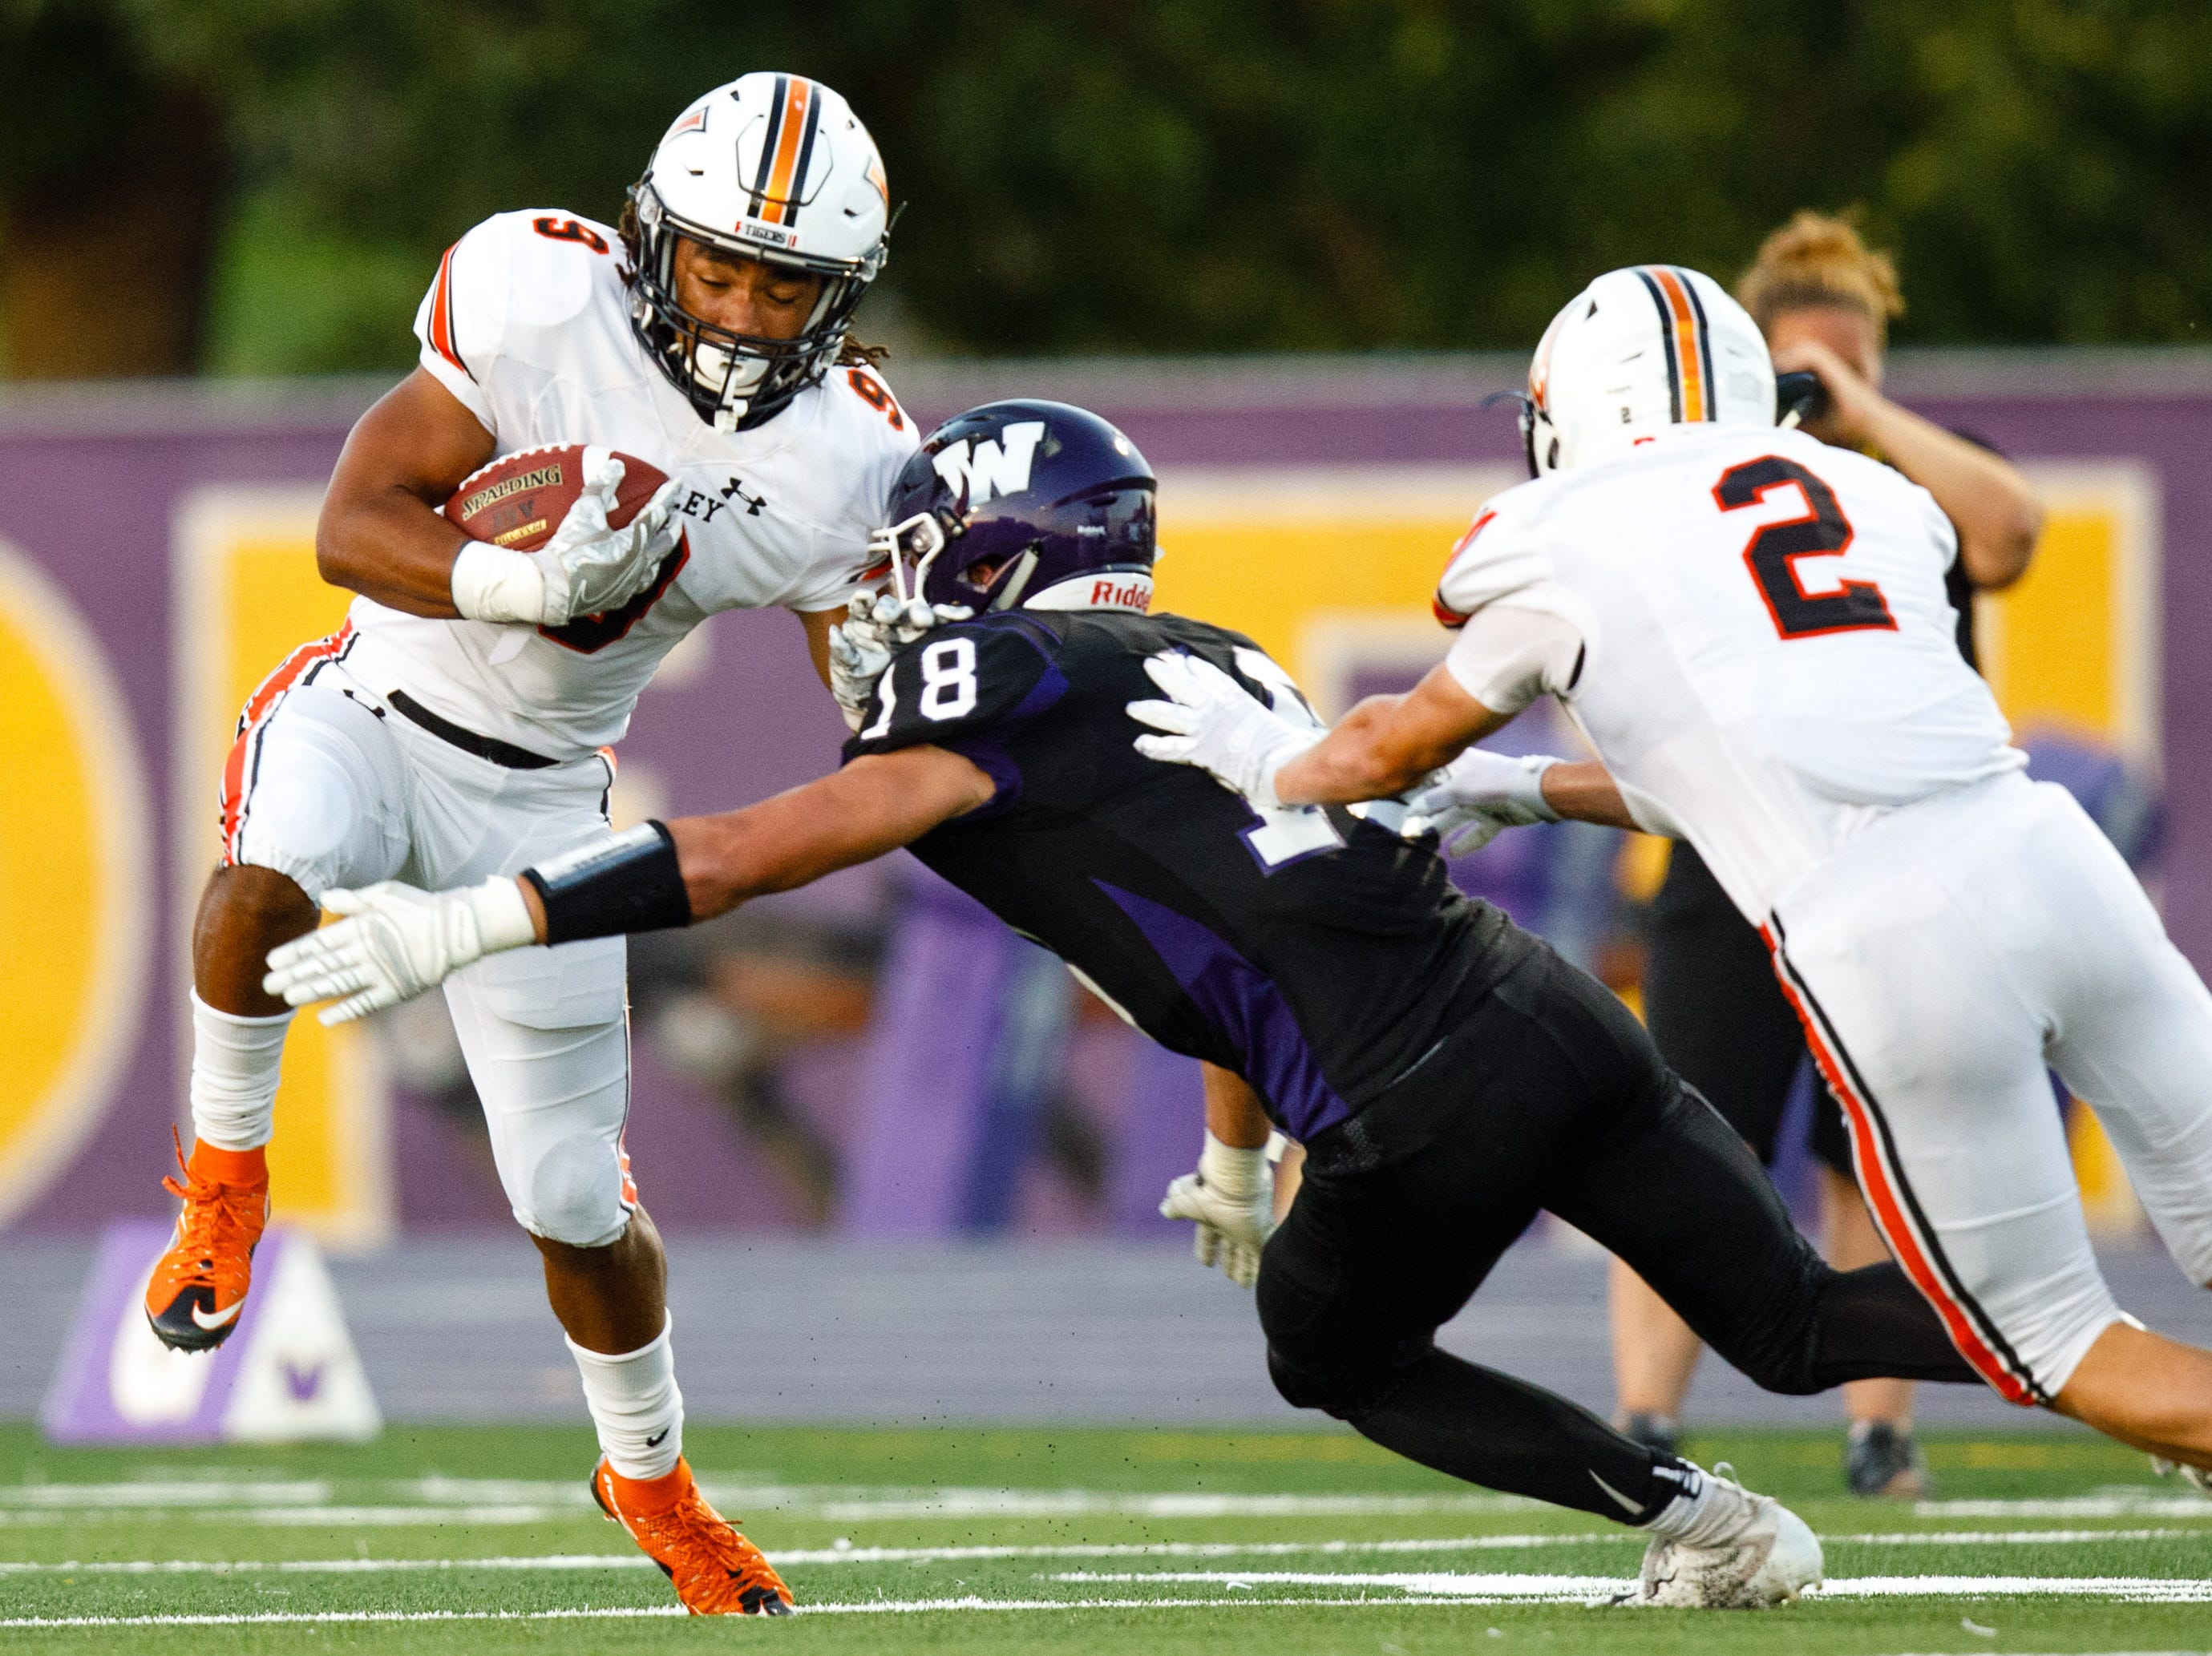 Valley High School's Creighton Mitchell (9) is hit by Waukee's Zach Eaton (18) after catching a pass in the first quarter Friday, Sept. 14, 2018, at Waukee Stadium.